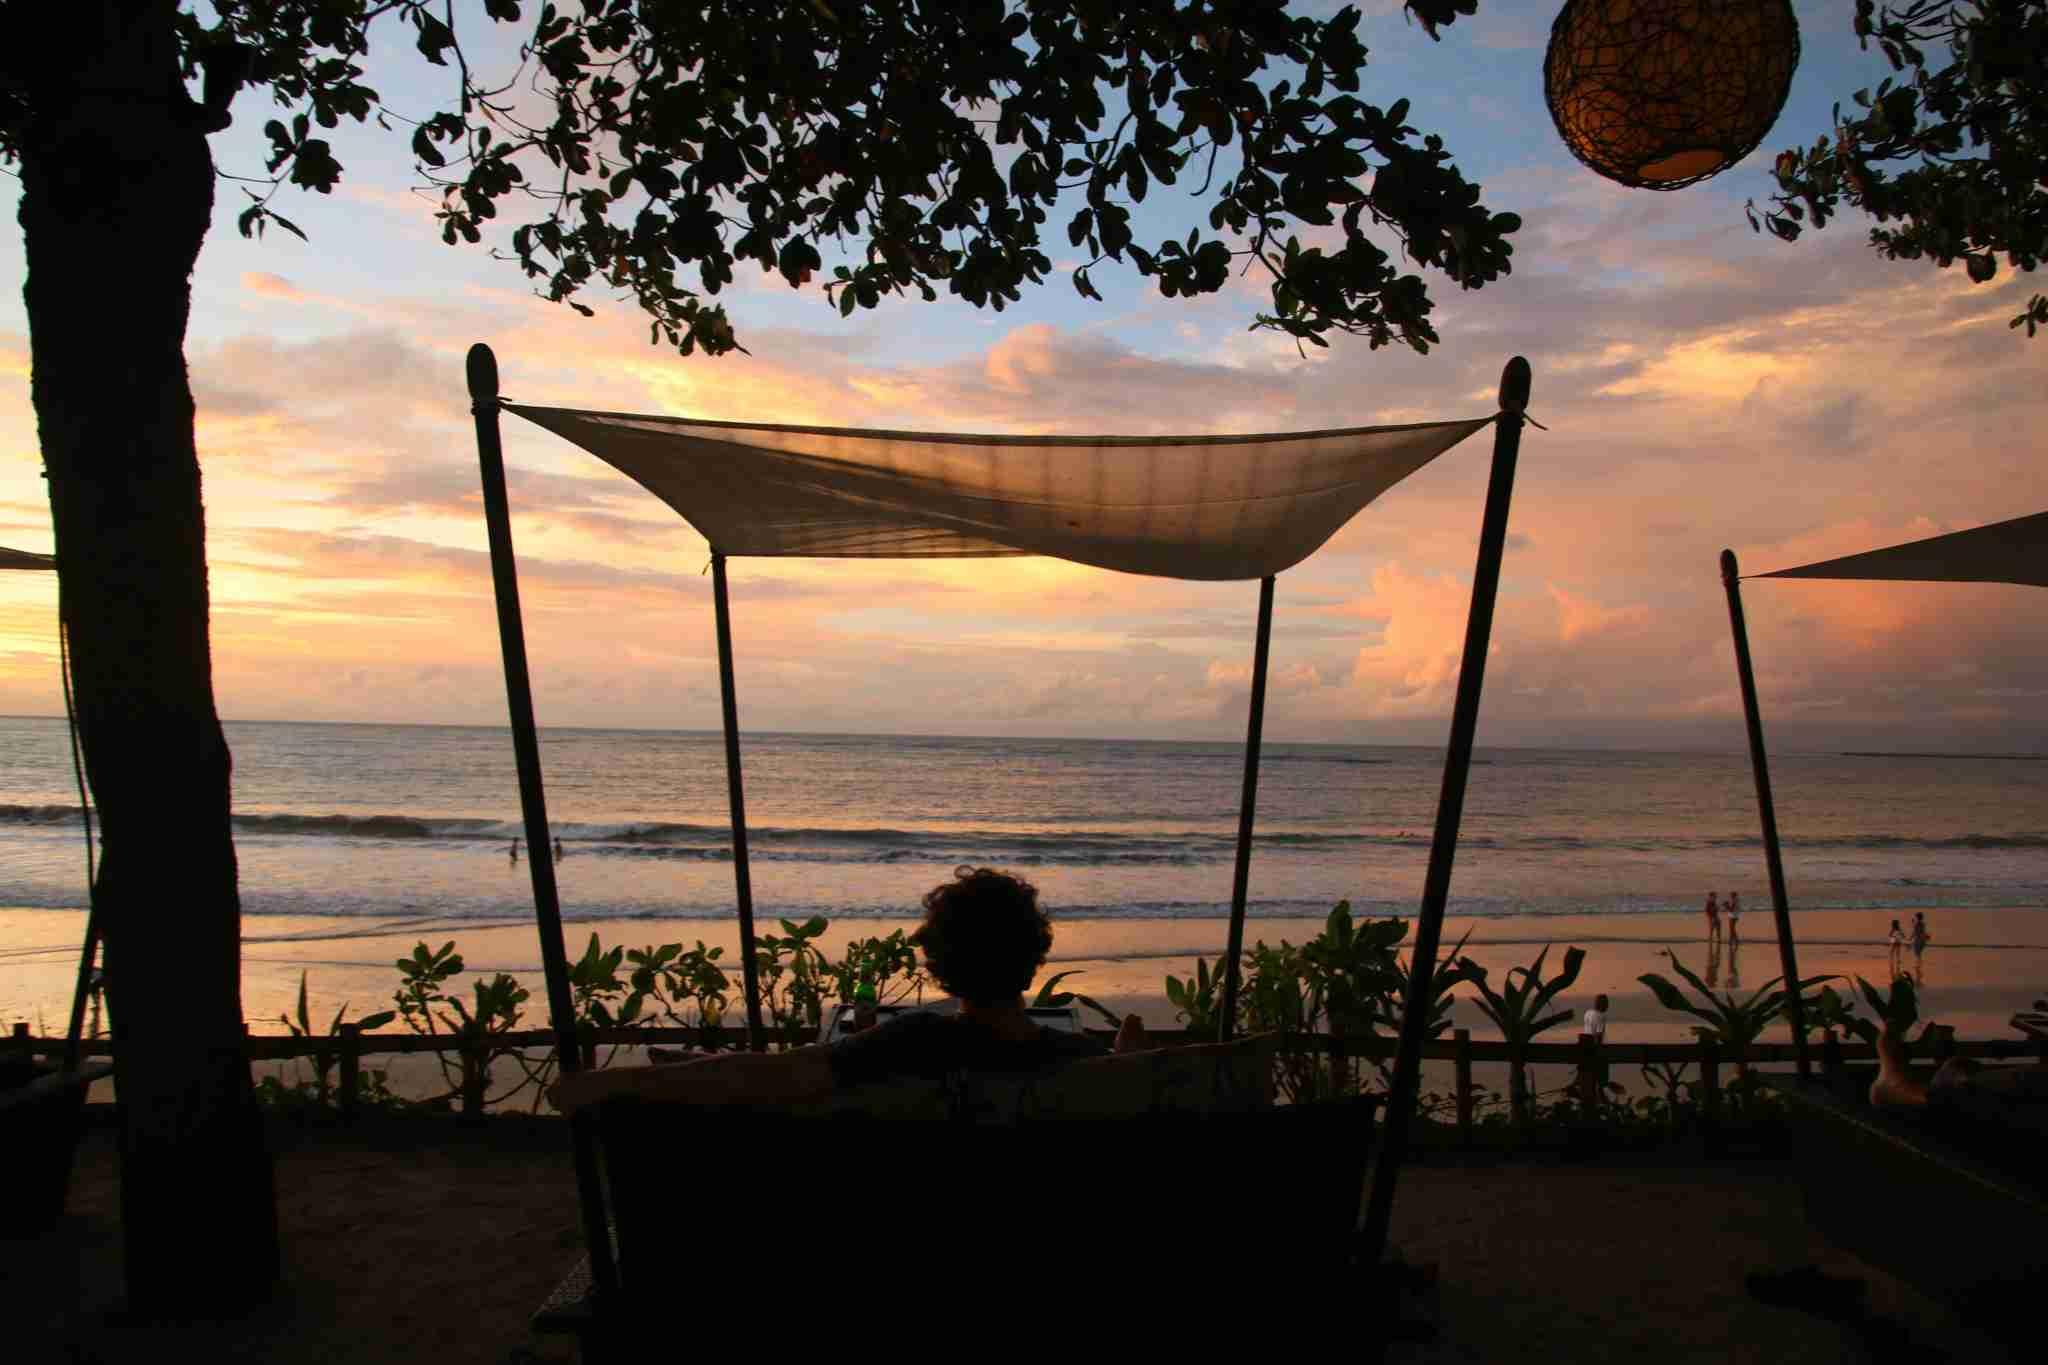 During a month of travel in Bali, I spent one night at the InterContinental - relaxing and not leaving the property for over day, including two sunsets.